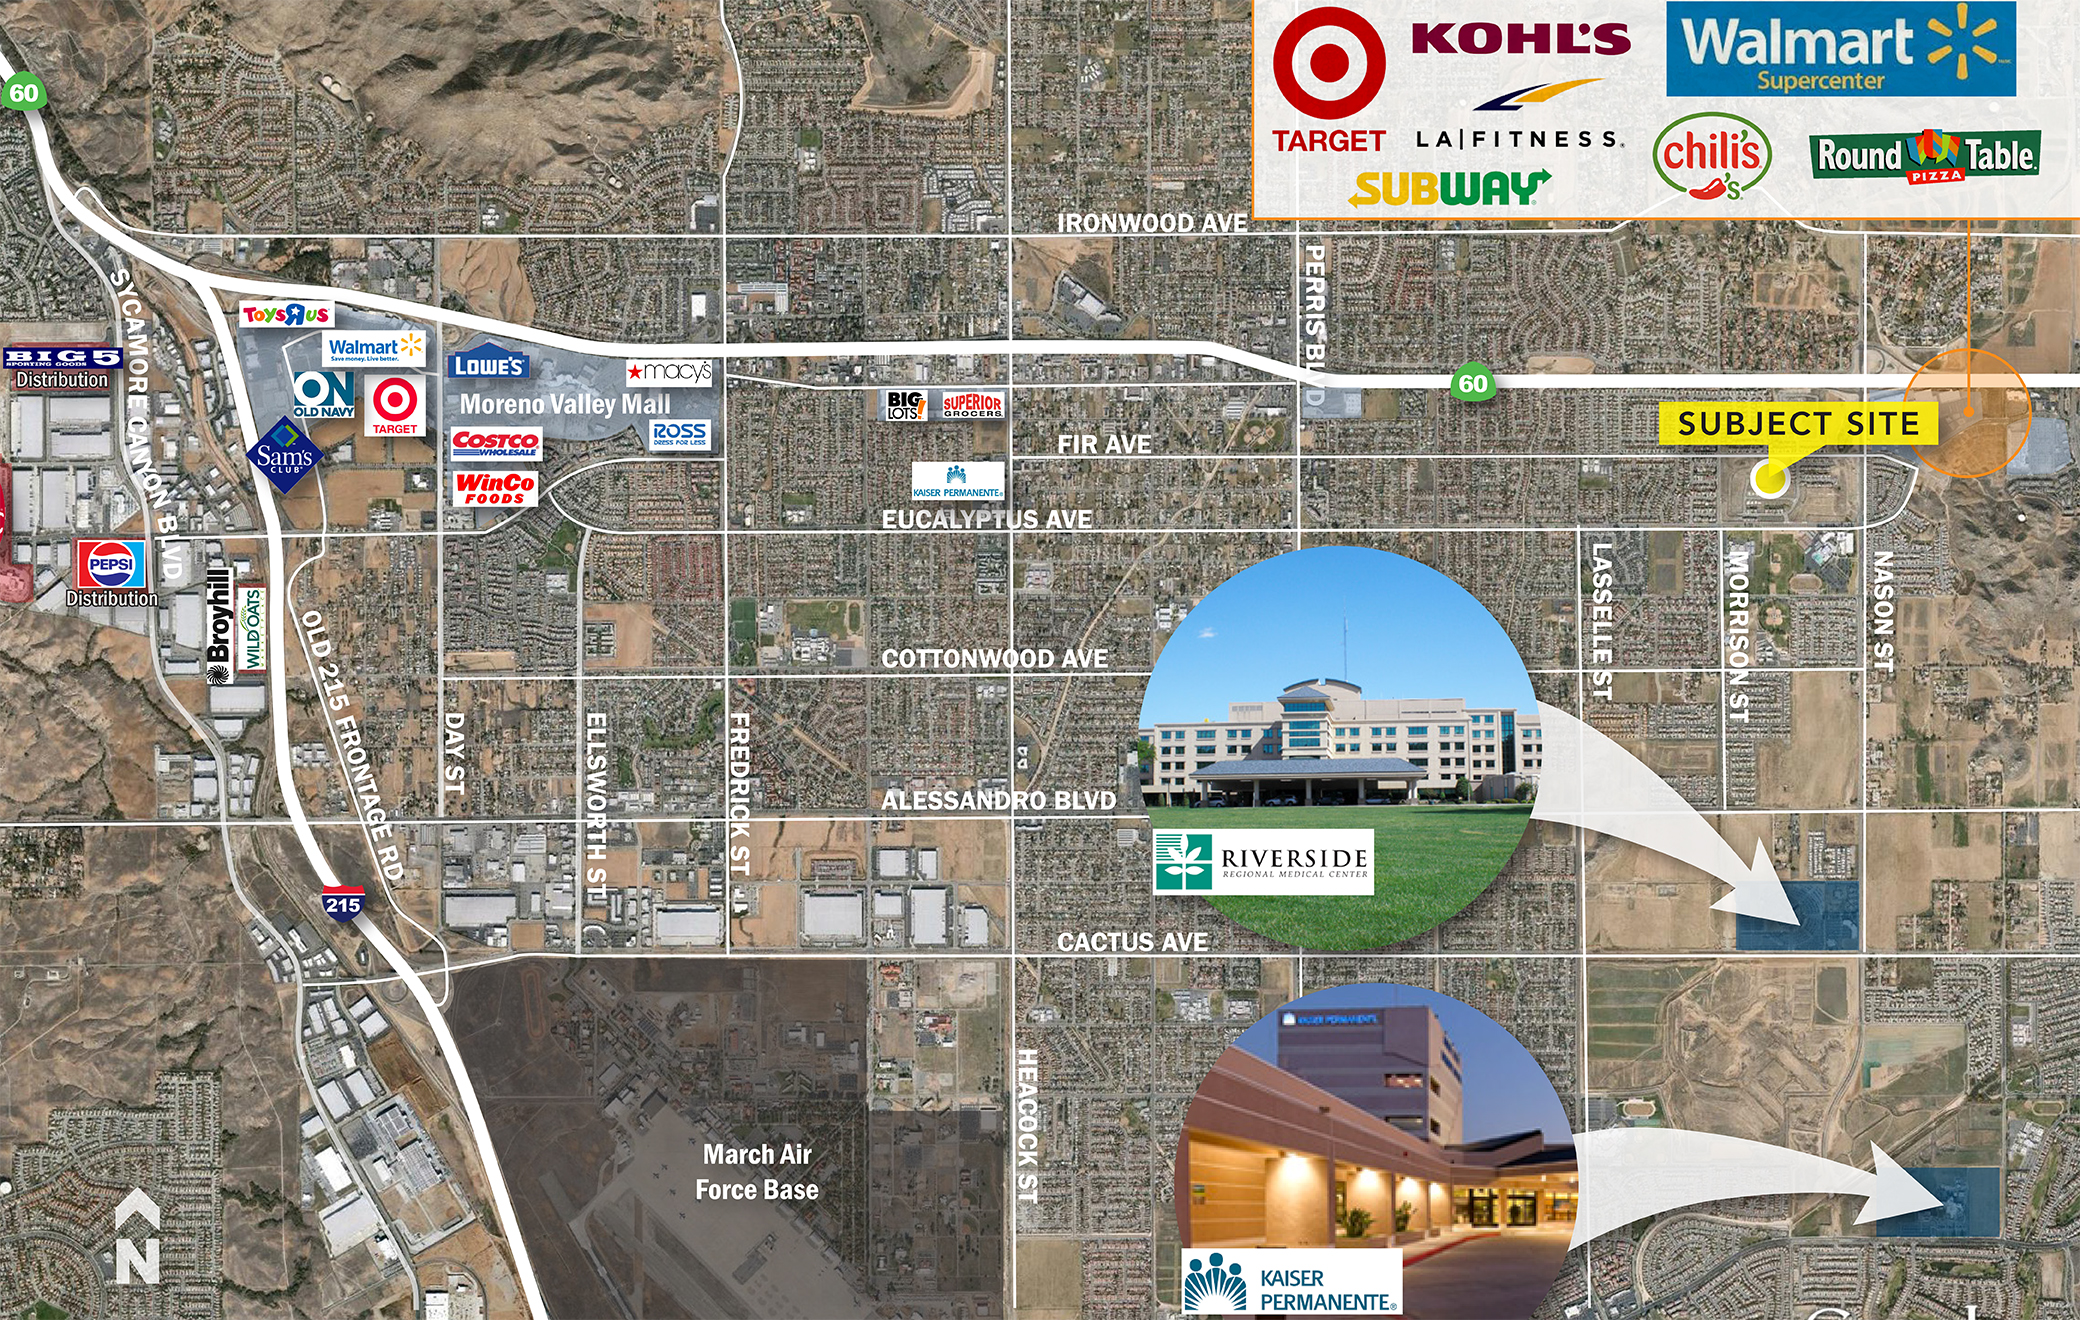 10 Acres Expired Map For 32 Lots City Of Moreno Valley Ca